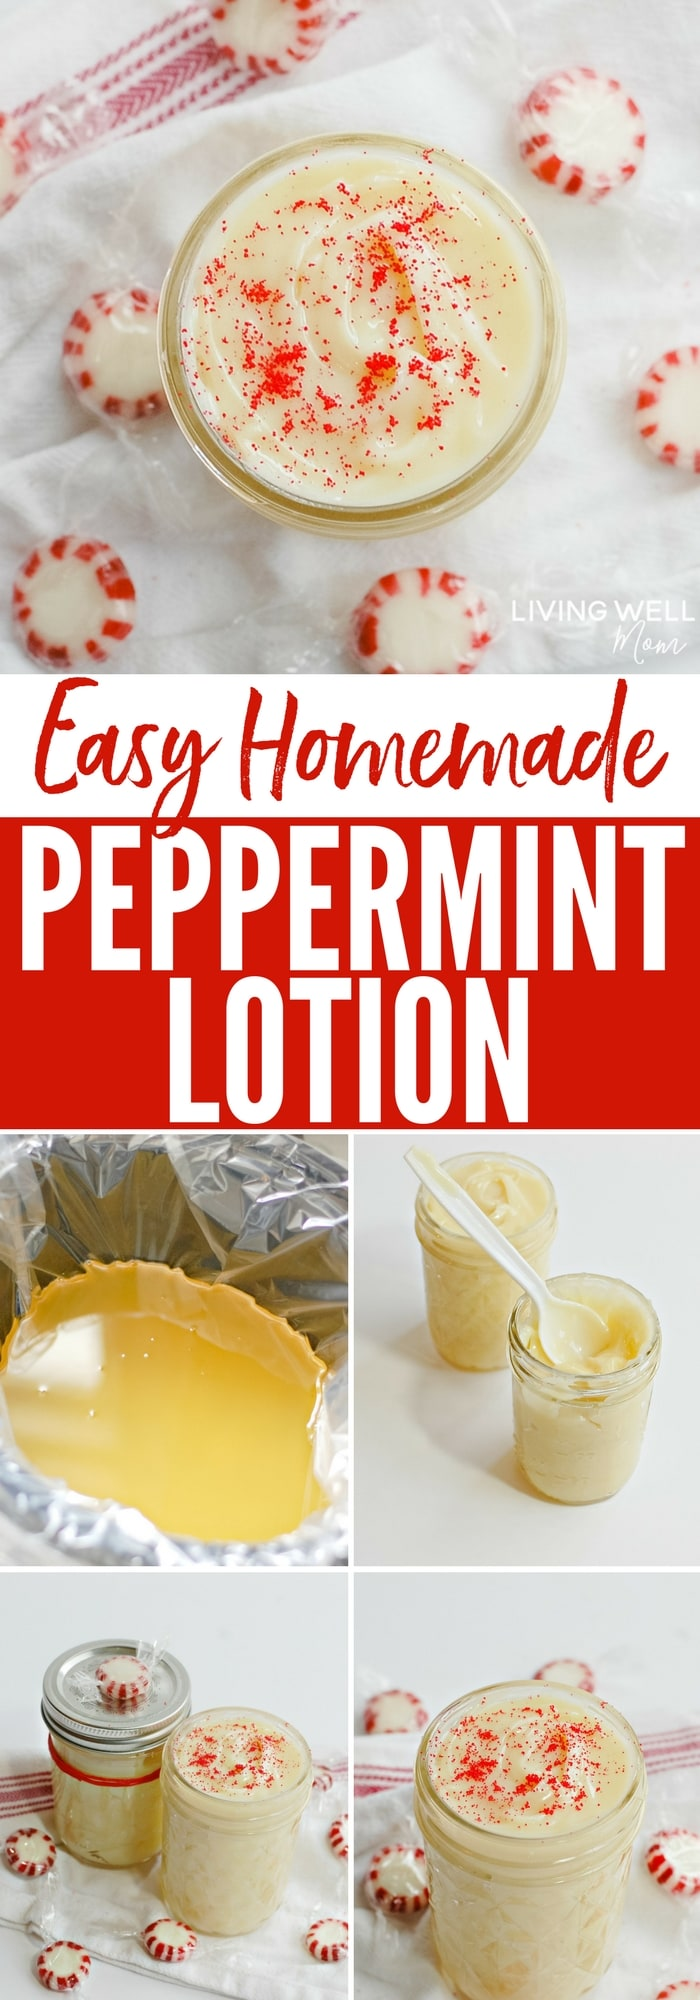 Dry skin? Try this homemade peppermint lotion with essential oils! You make this simple DIY recipe in your slow cooker and the result is a luxurious natural healing moisturizer you'll love!